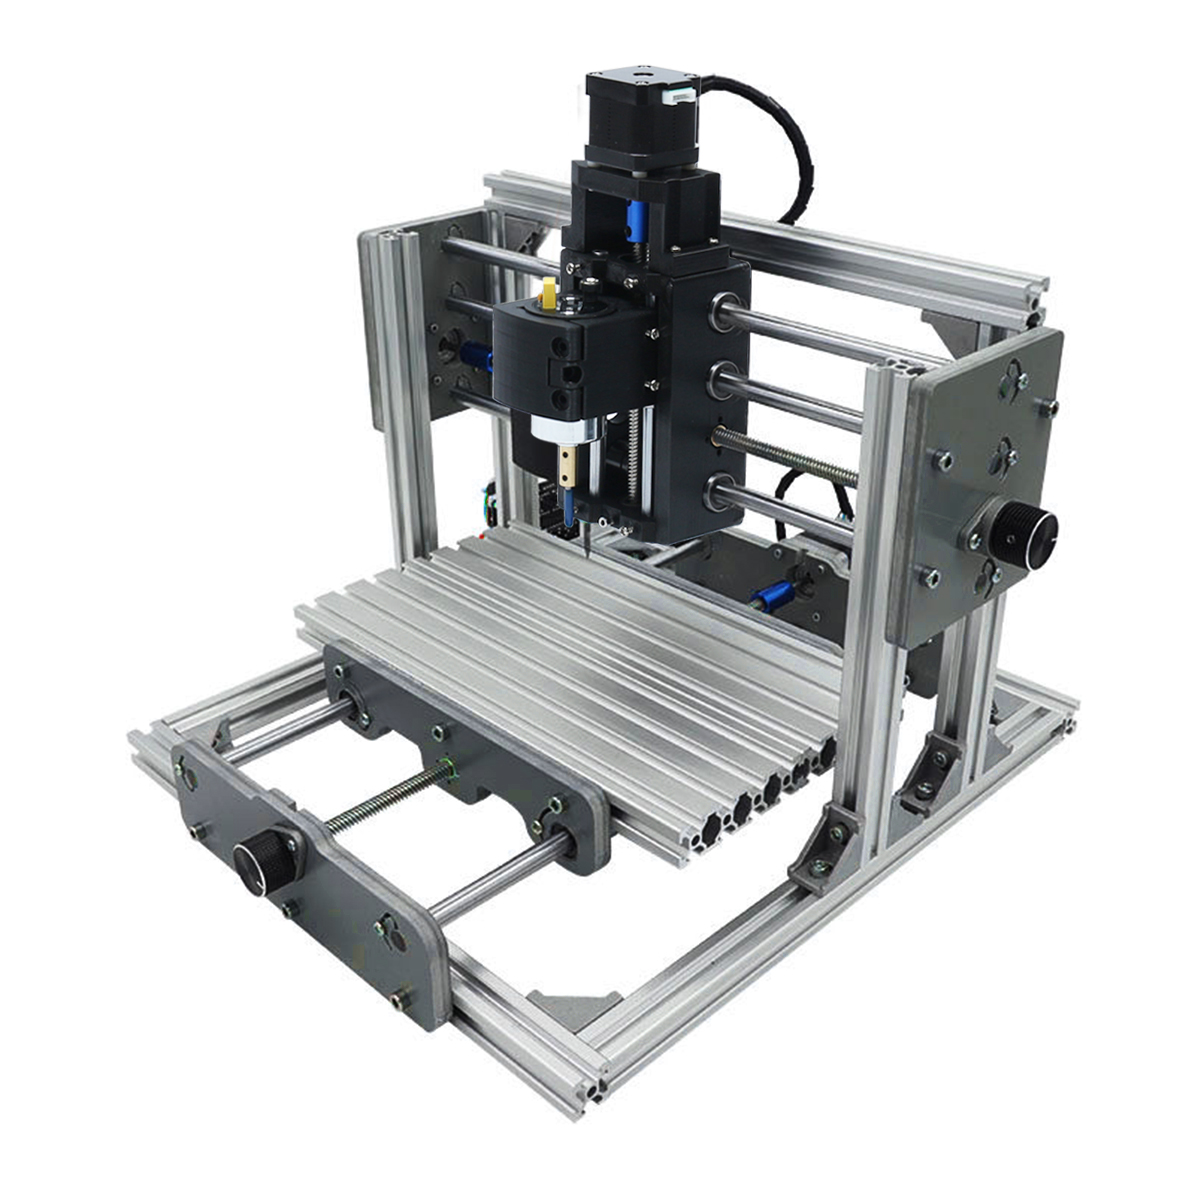 2417 3 Axis Mini DIY CNC Router USB Wood Carving Engraving ...